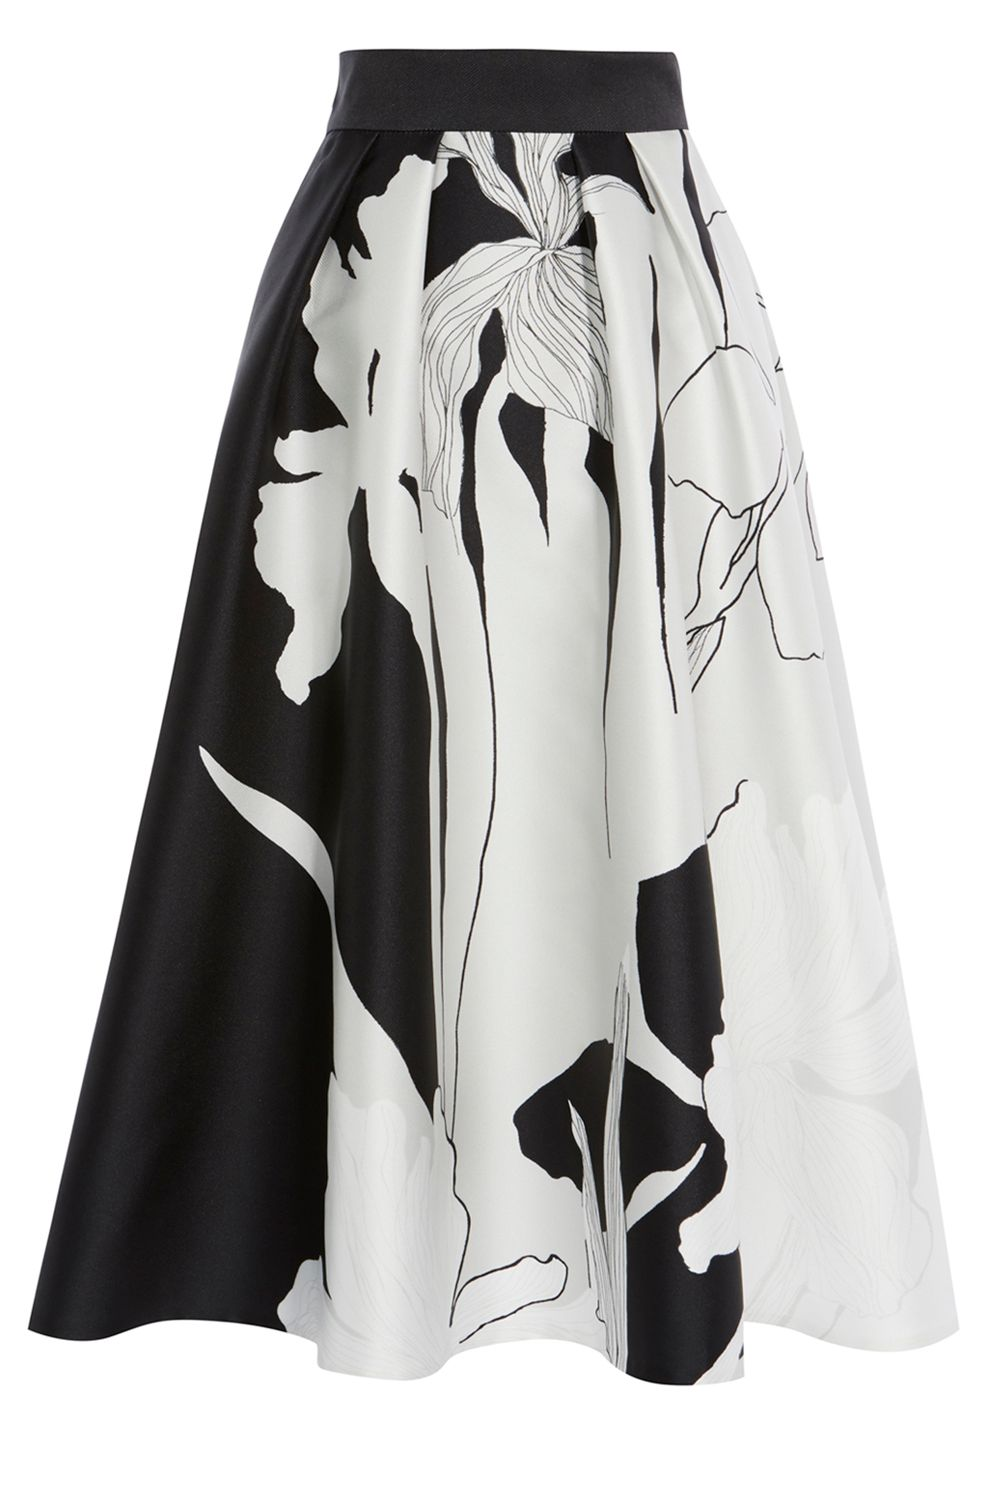 Coast Iris Print Full Skirt, MonoSilver